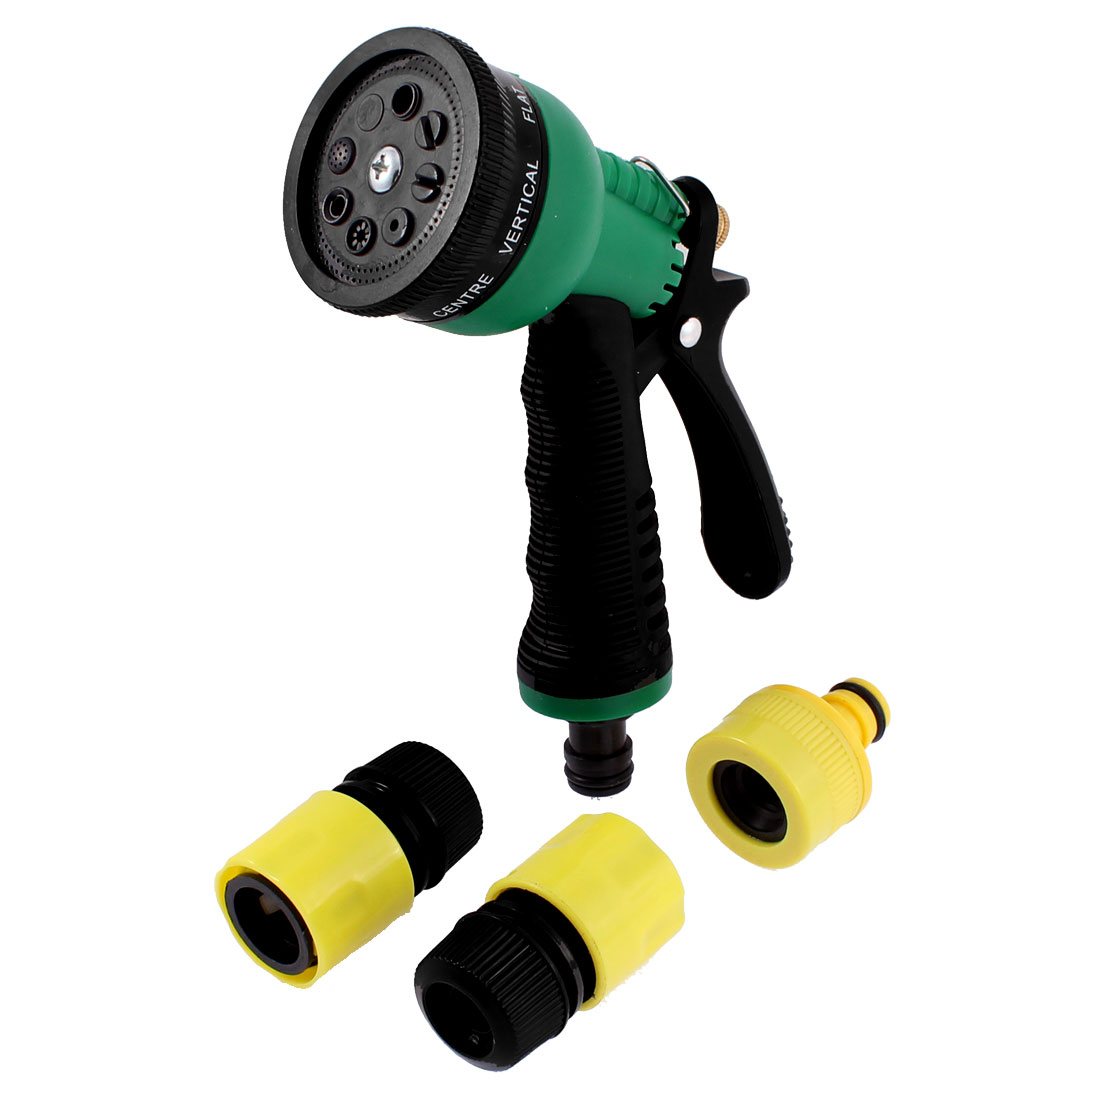 Garden Irrigation Car Cleaning Multifunction Water Hose Squirt Sprayer Nozzle Gun Connector